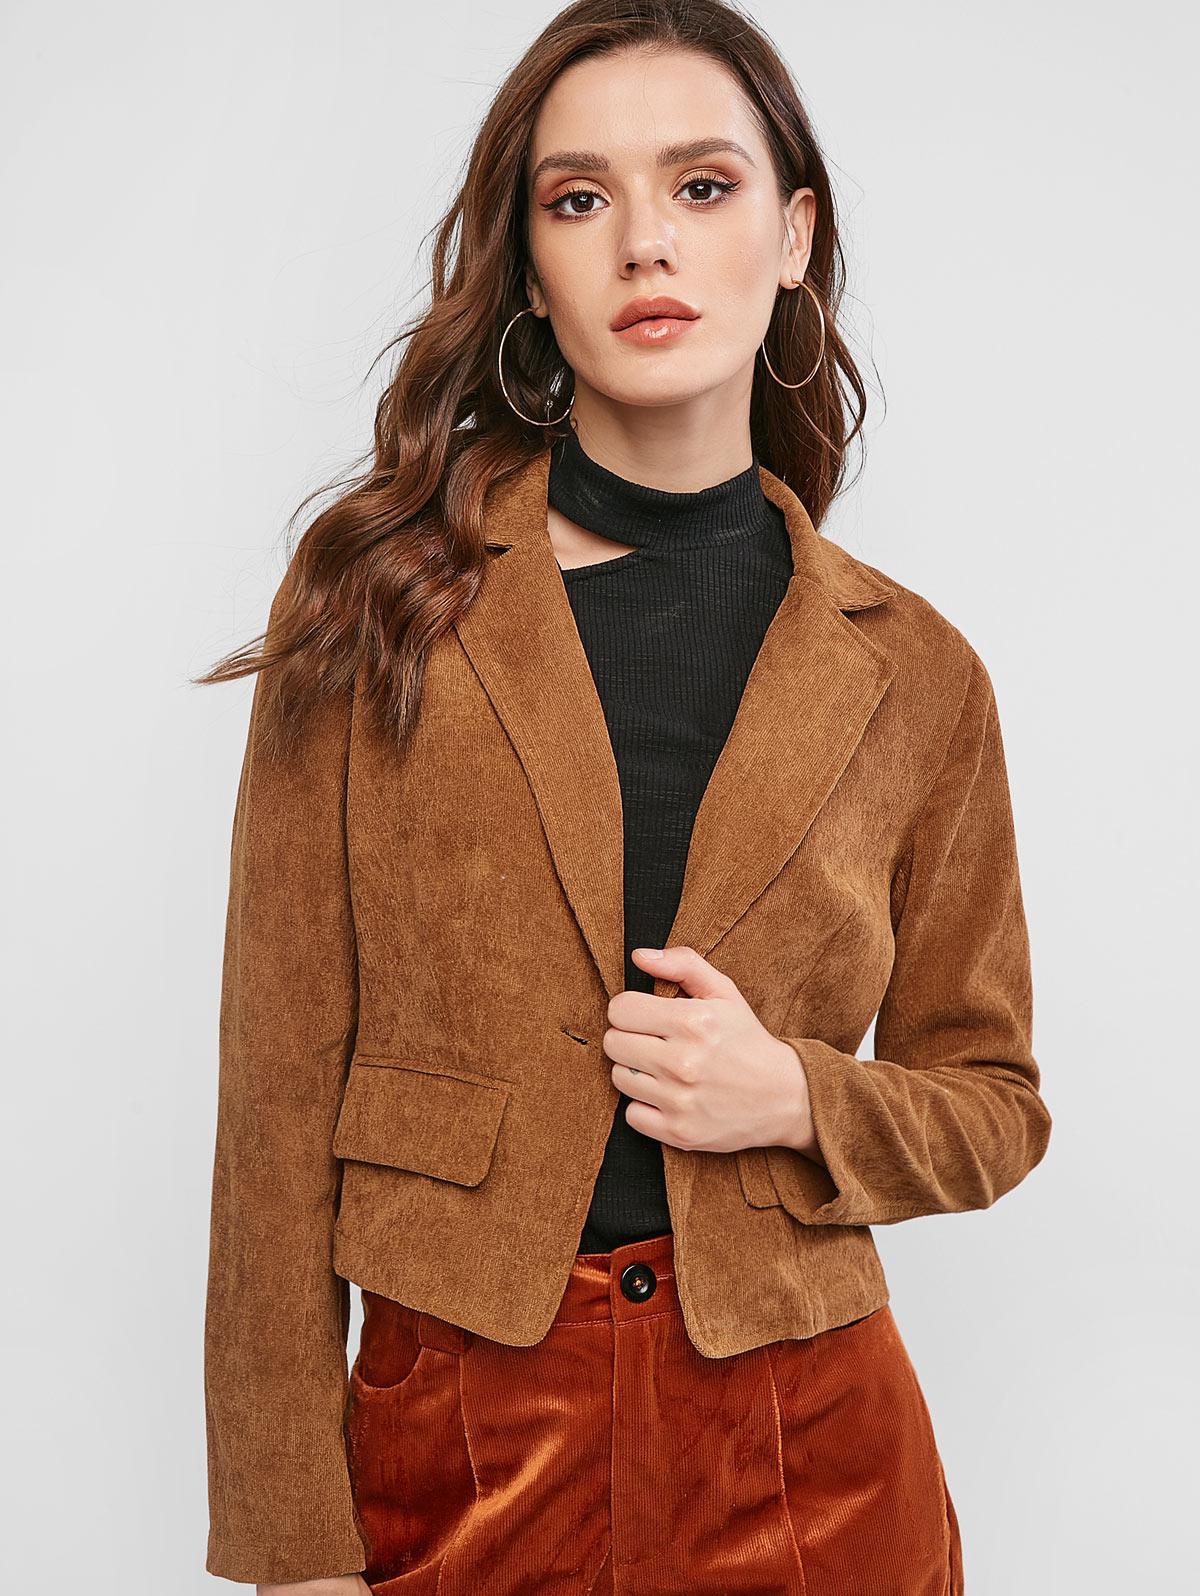 ZAFUL Corduroy One Button Lapel Blazer